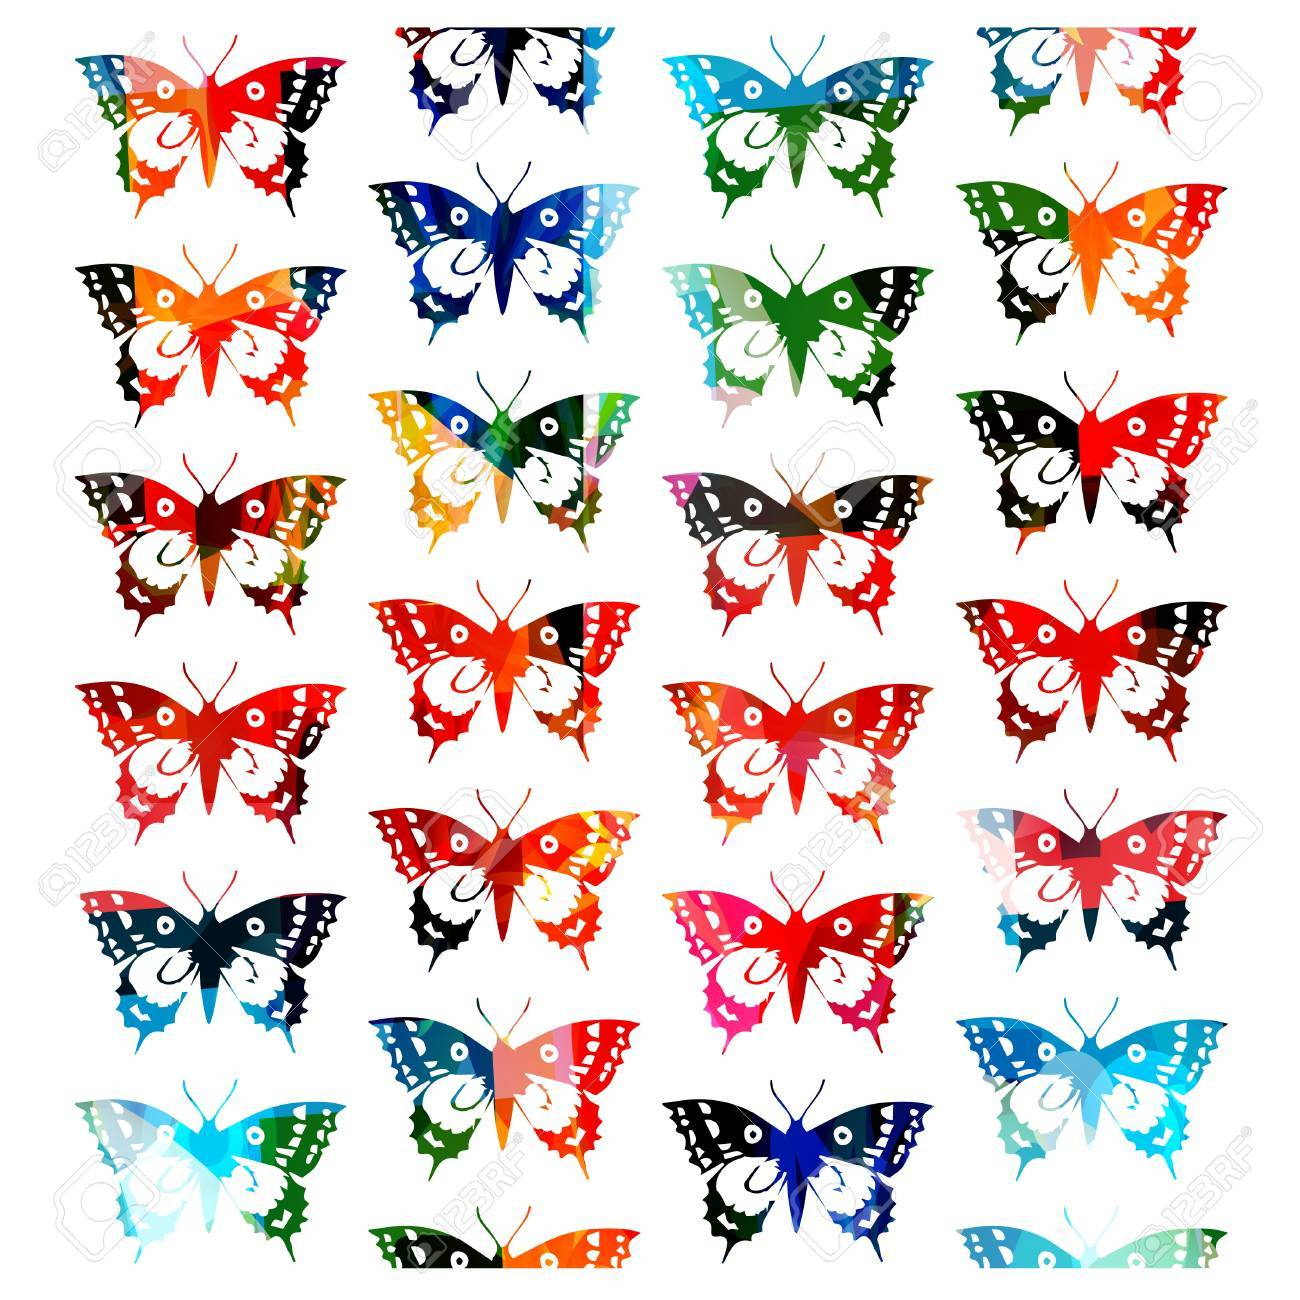 Colorful butterfly designs clipart 4 » Clipart Portal.